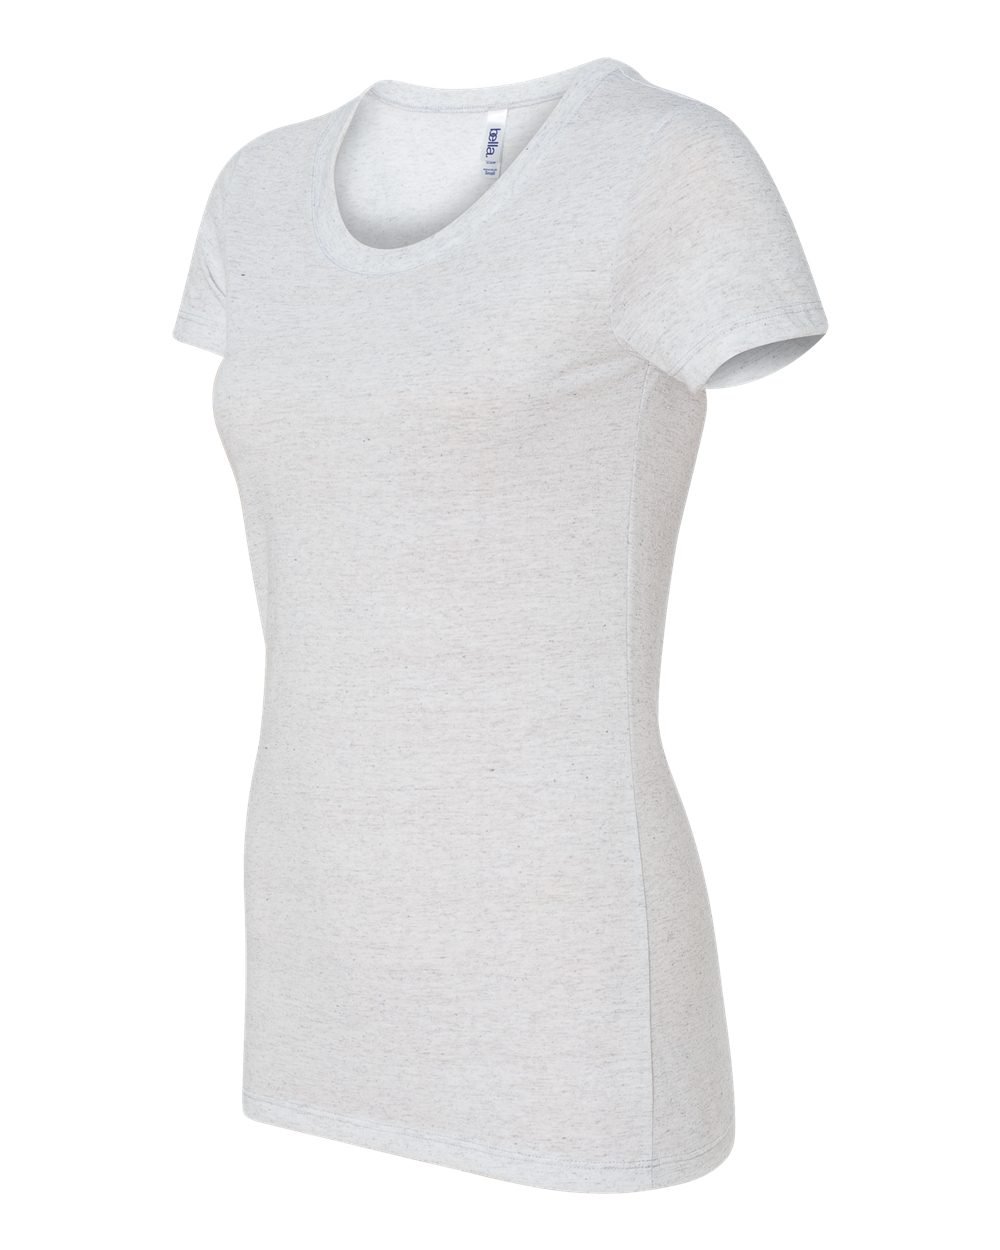 Bella-Canvas-Women-039-s-Triblend-Short-Sleeve-T-Shirt-B8413-S-2XL thumbnail 15